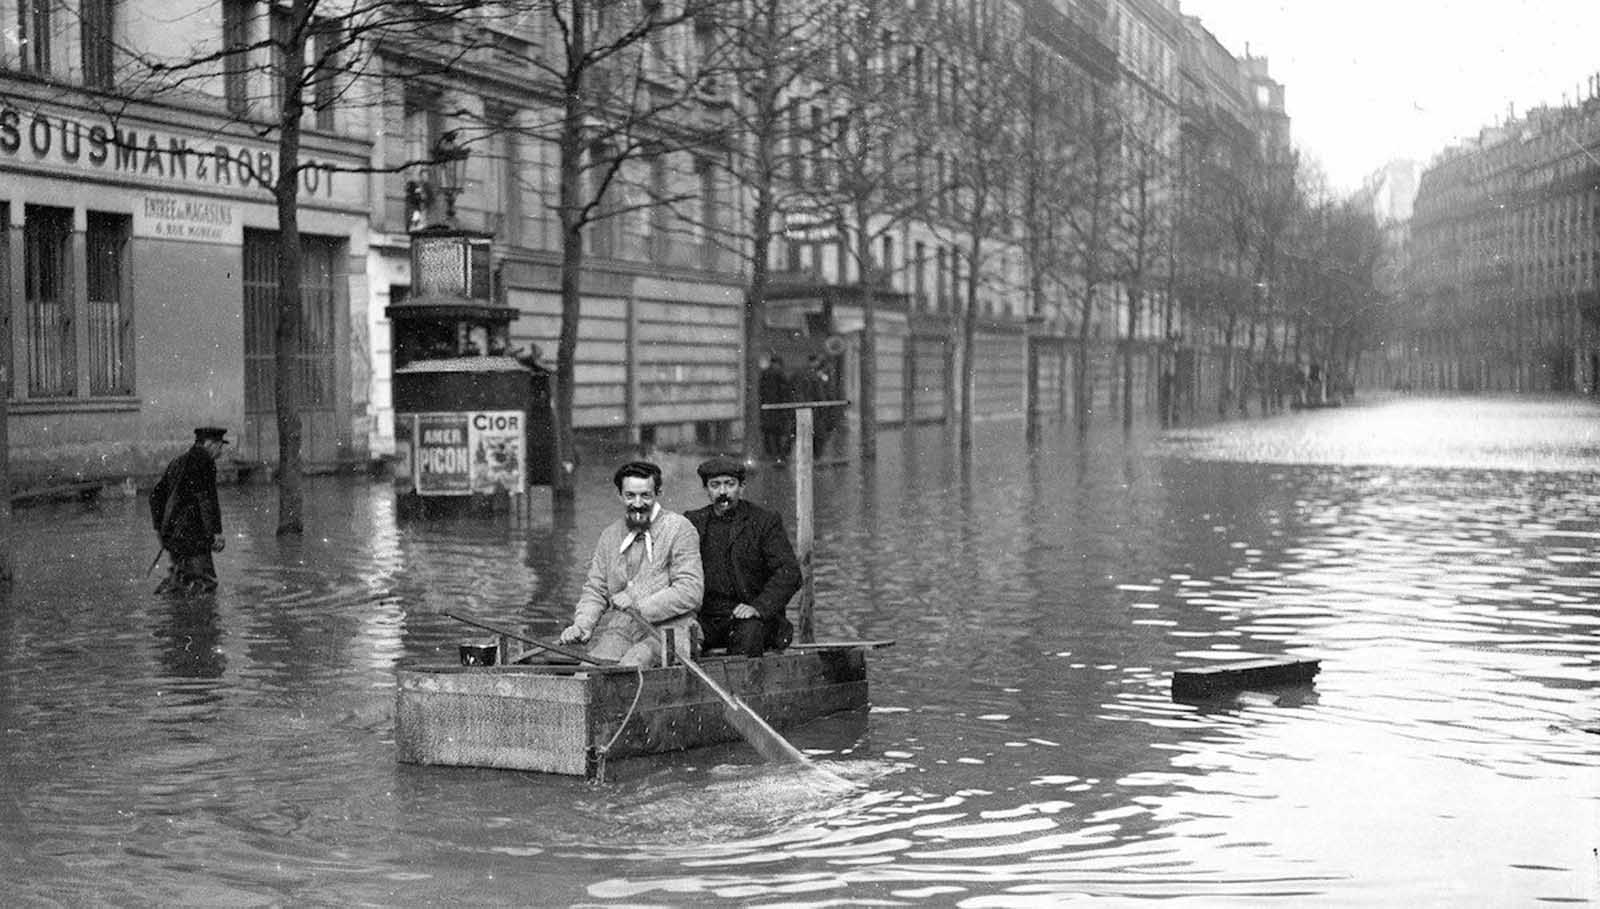 Two men travel down the street in an improvised boat.